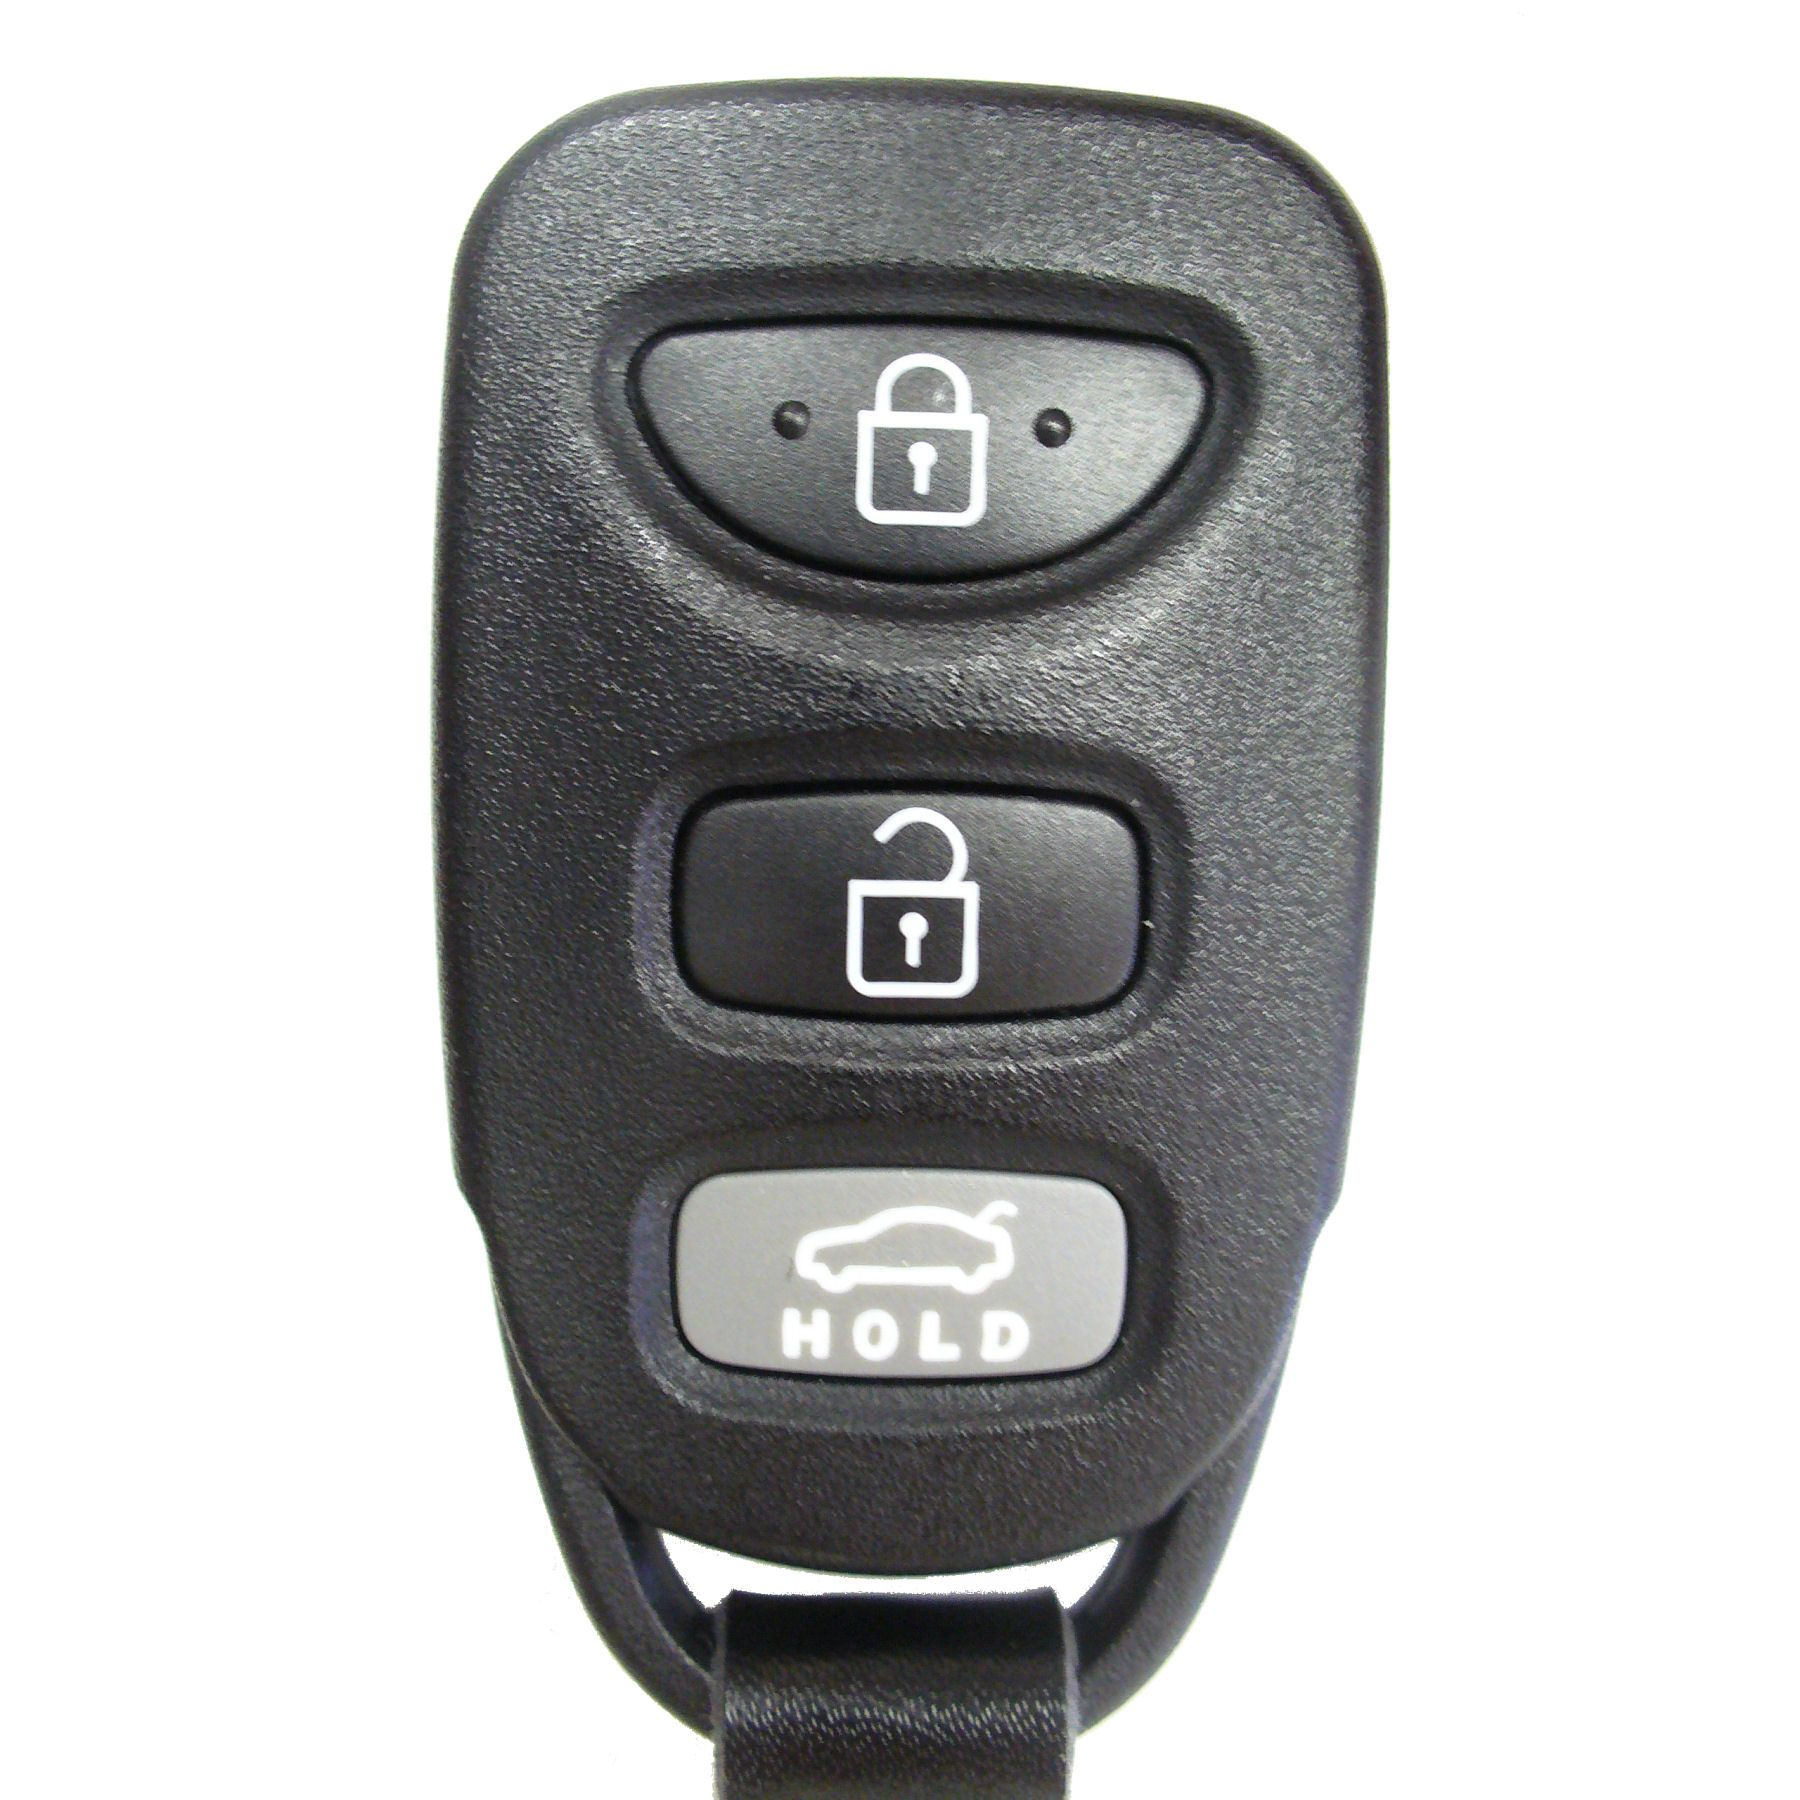 New 4 button hyundai sonata key fob remote 4 button key fob remote for make